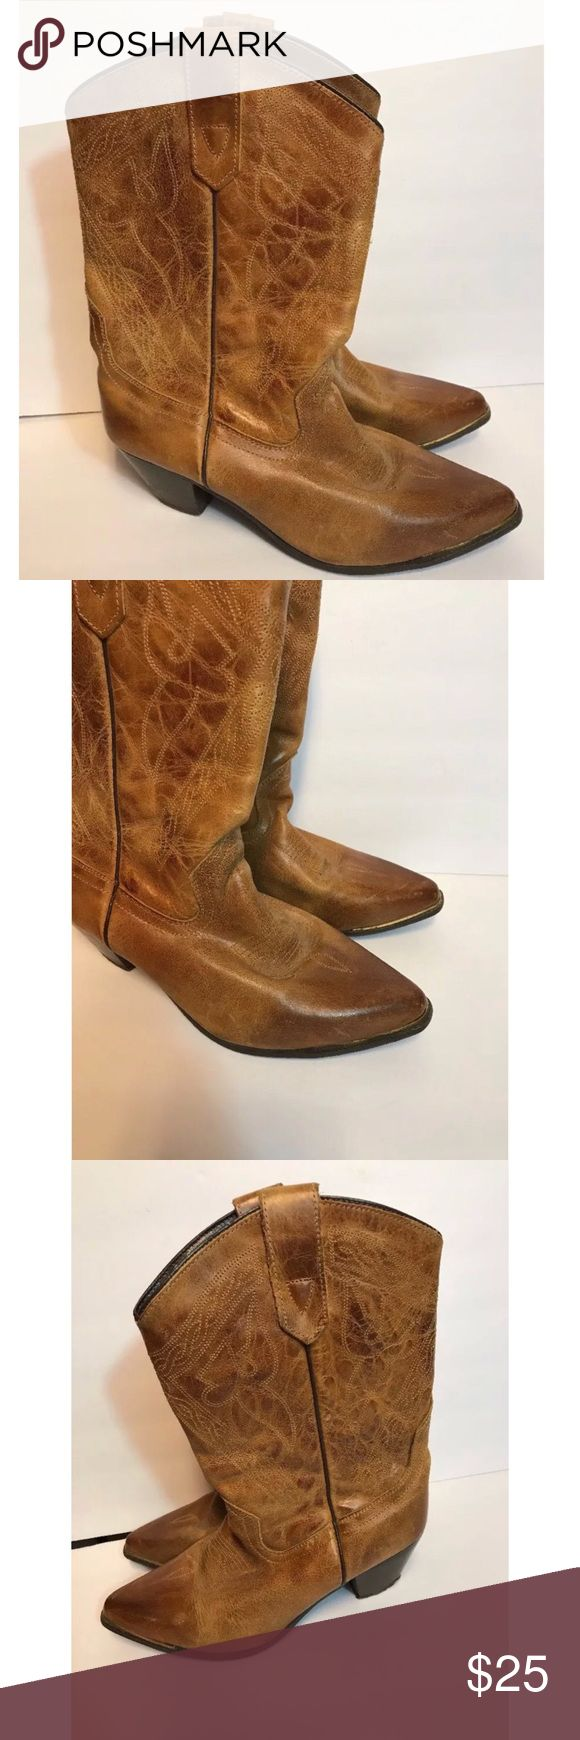 Oak Tree Farms Cowgirl Boots Brown Leather 9.5 Med Oak Tree Farms Cowgirl Boots , brown leather US 9.5 , preowned , # 99614, has a lot of life left in these. Looks good, message me for additional questions. Oak Tree Farms Shoes Heeled Boots